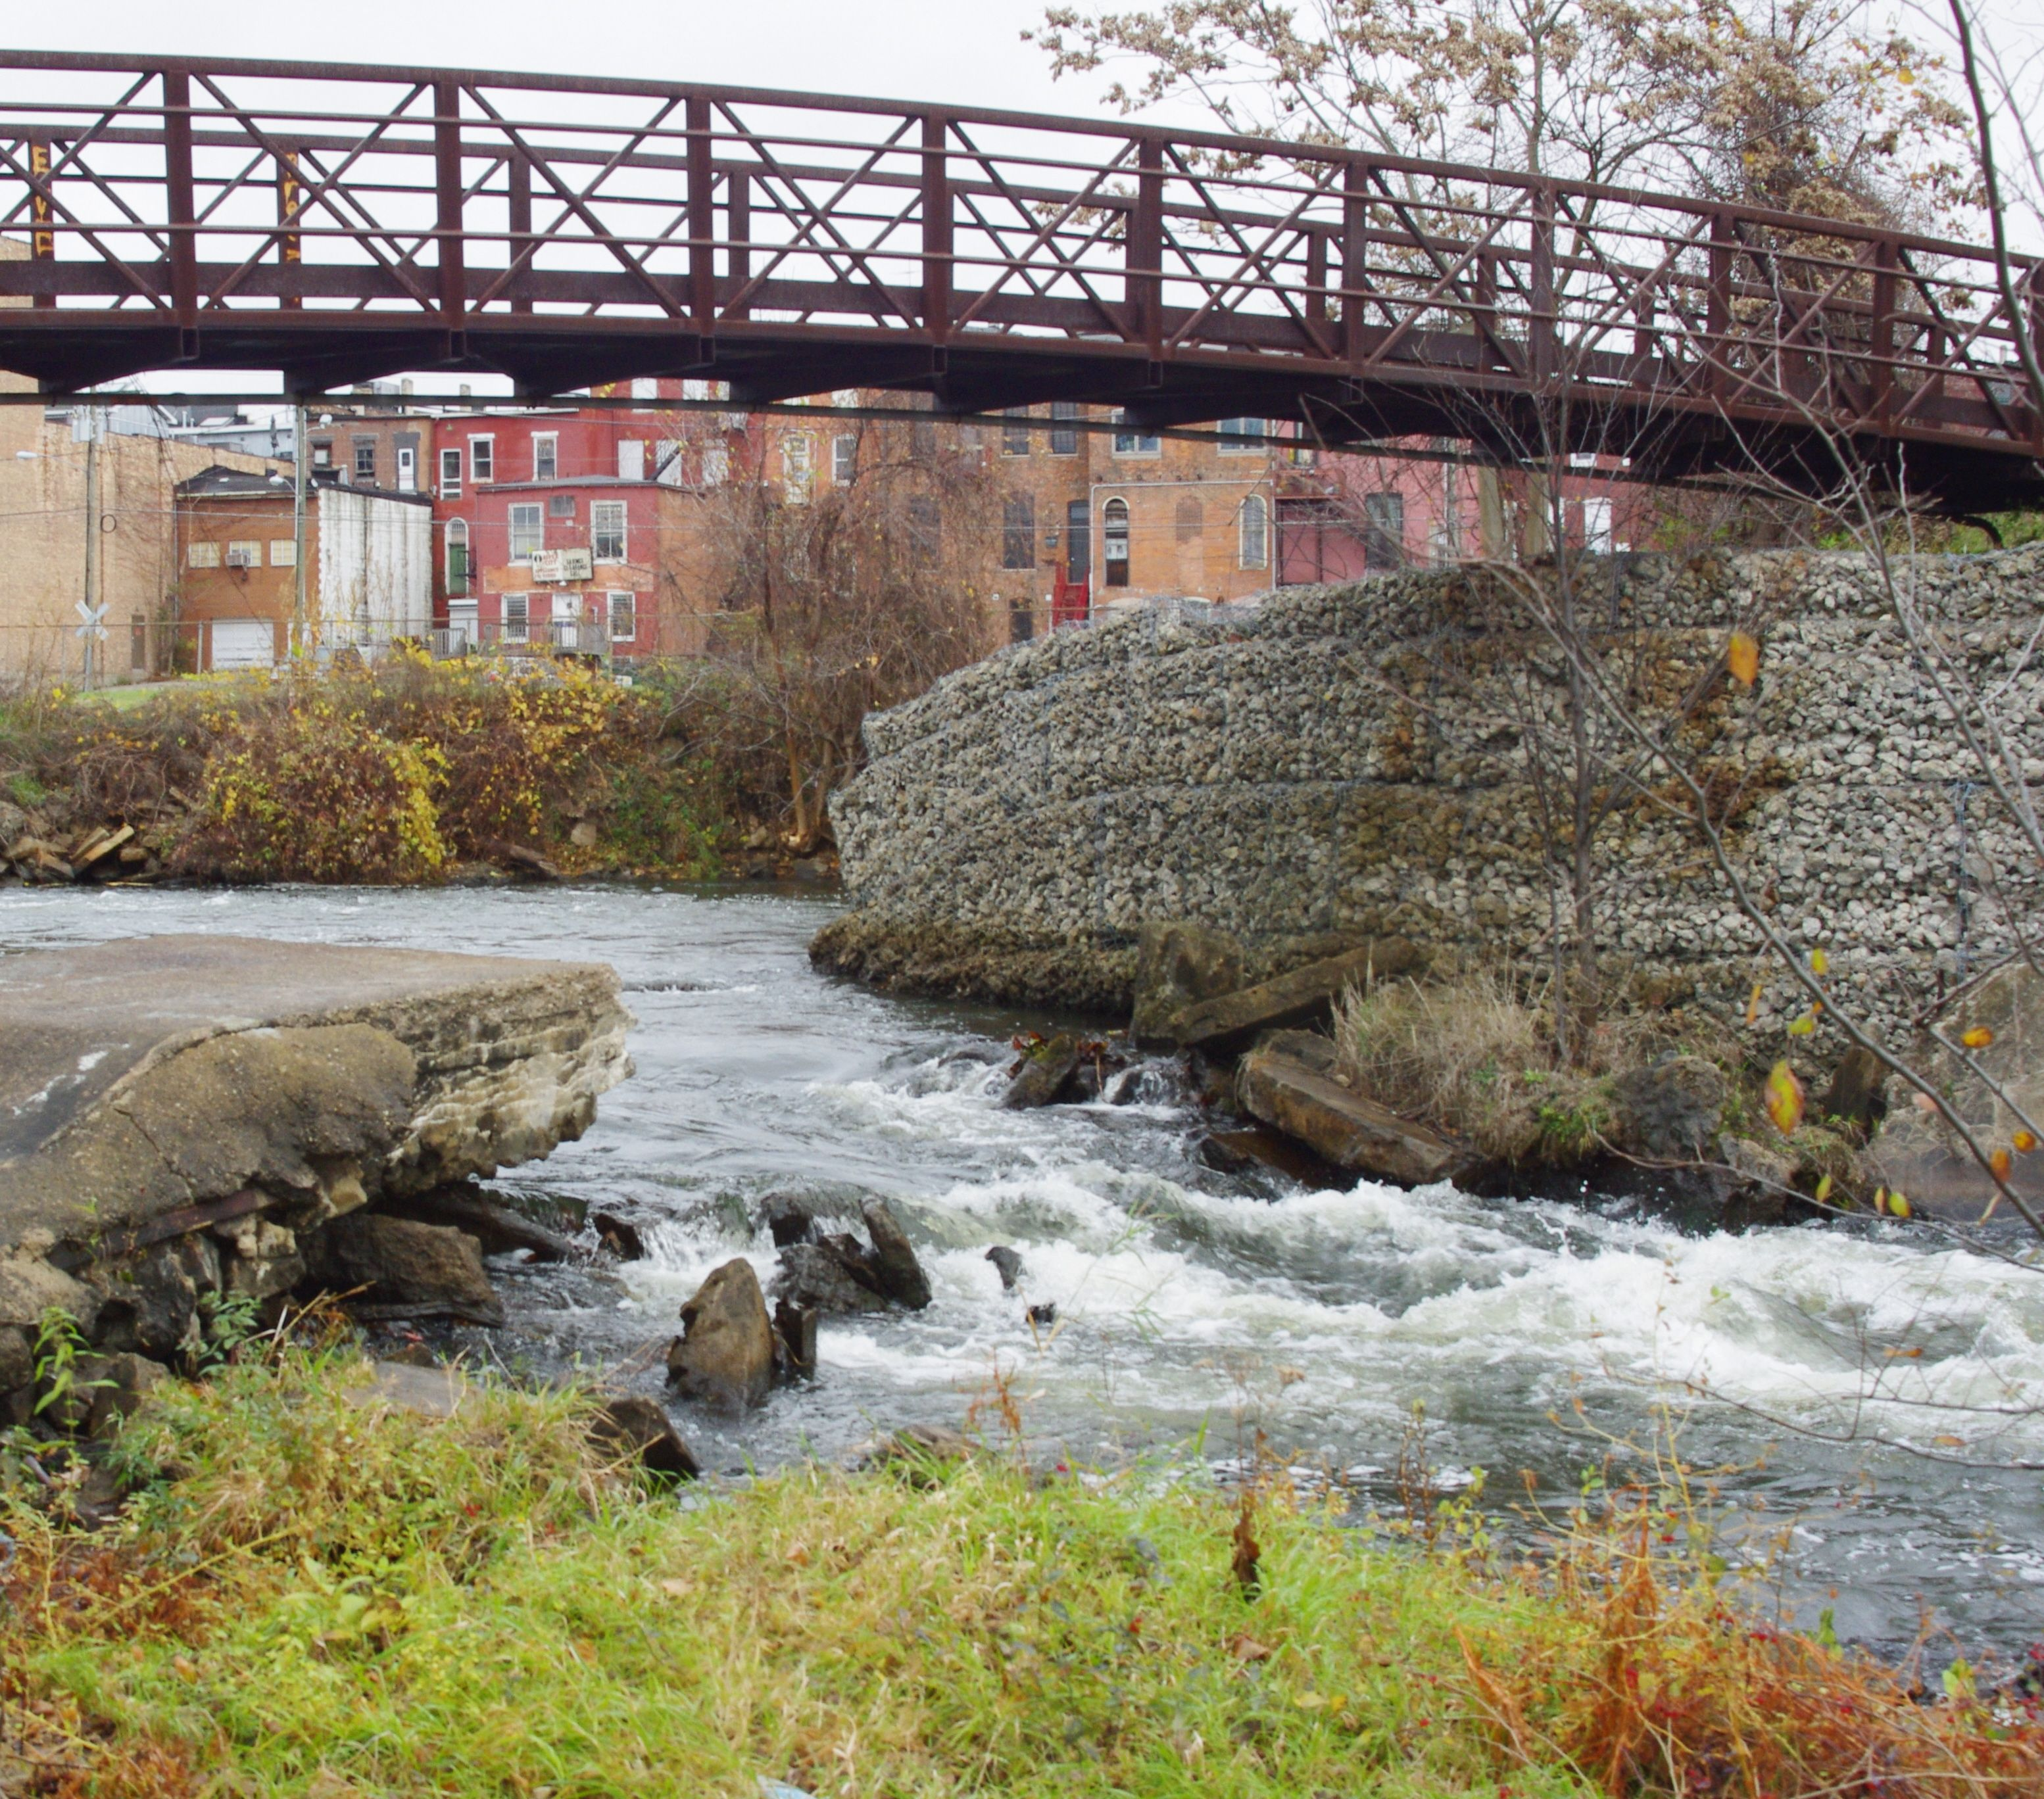 One Of The Bridges Across The Rocky River At Memory Isle